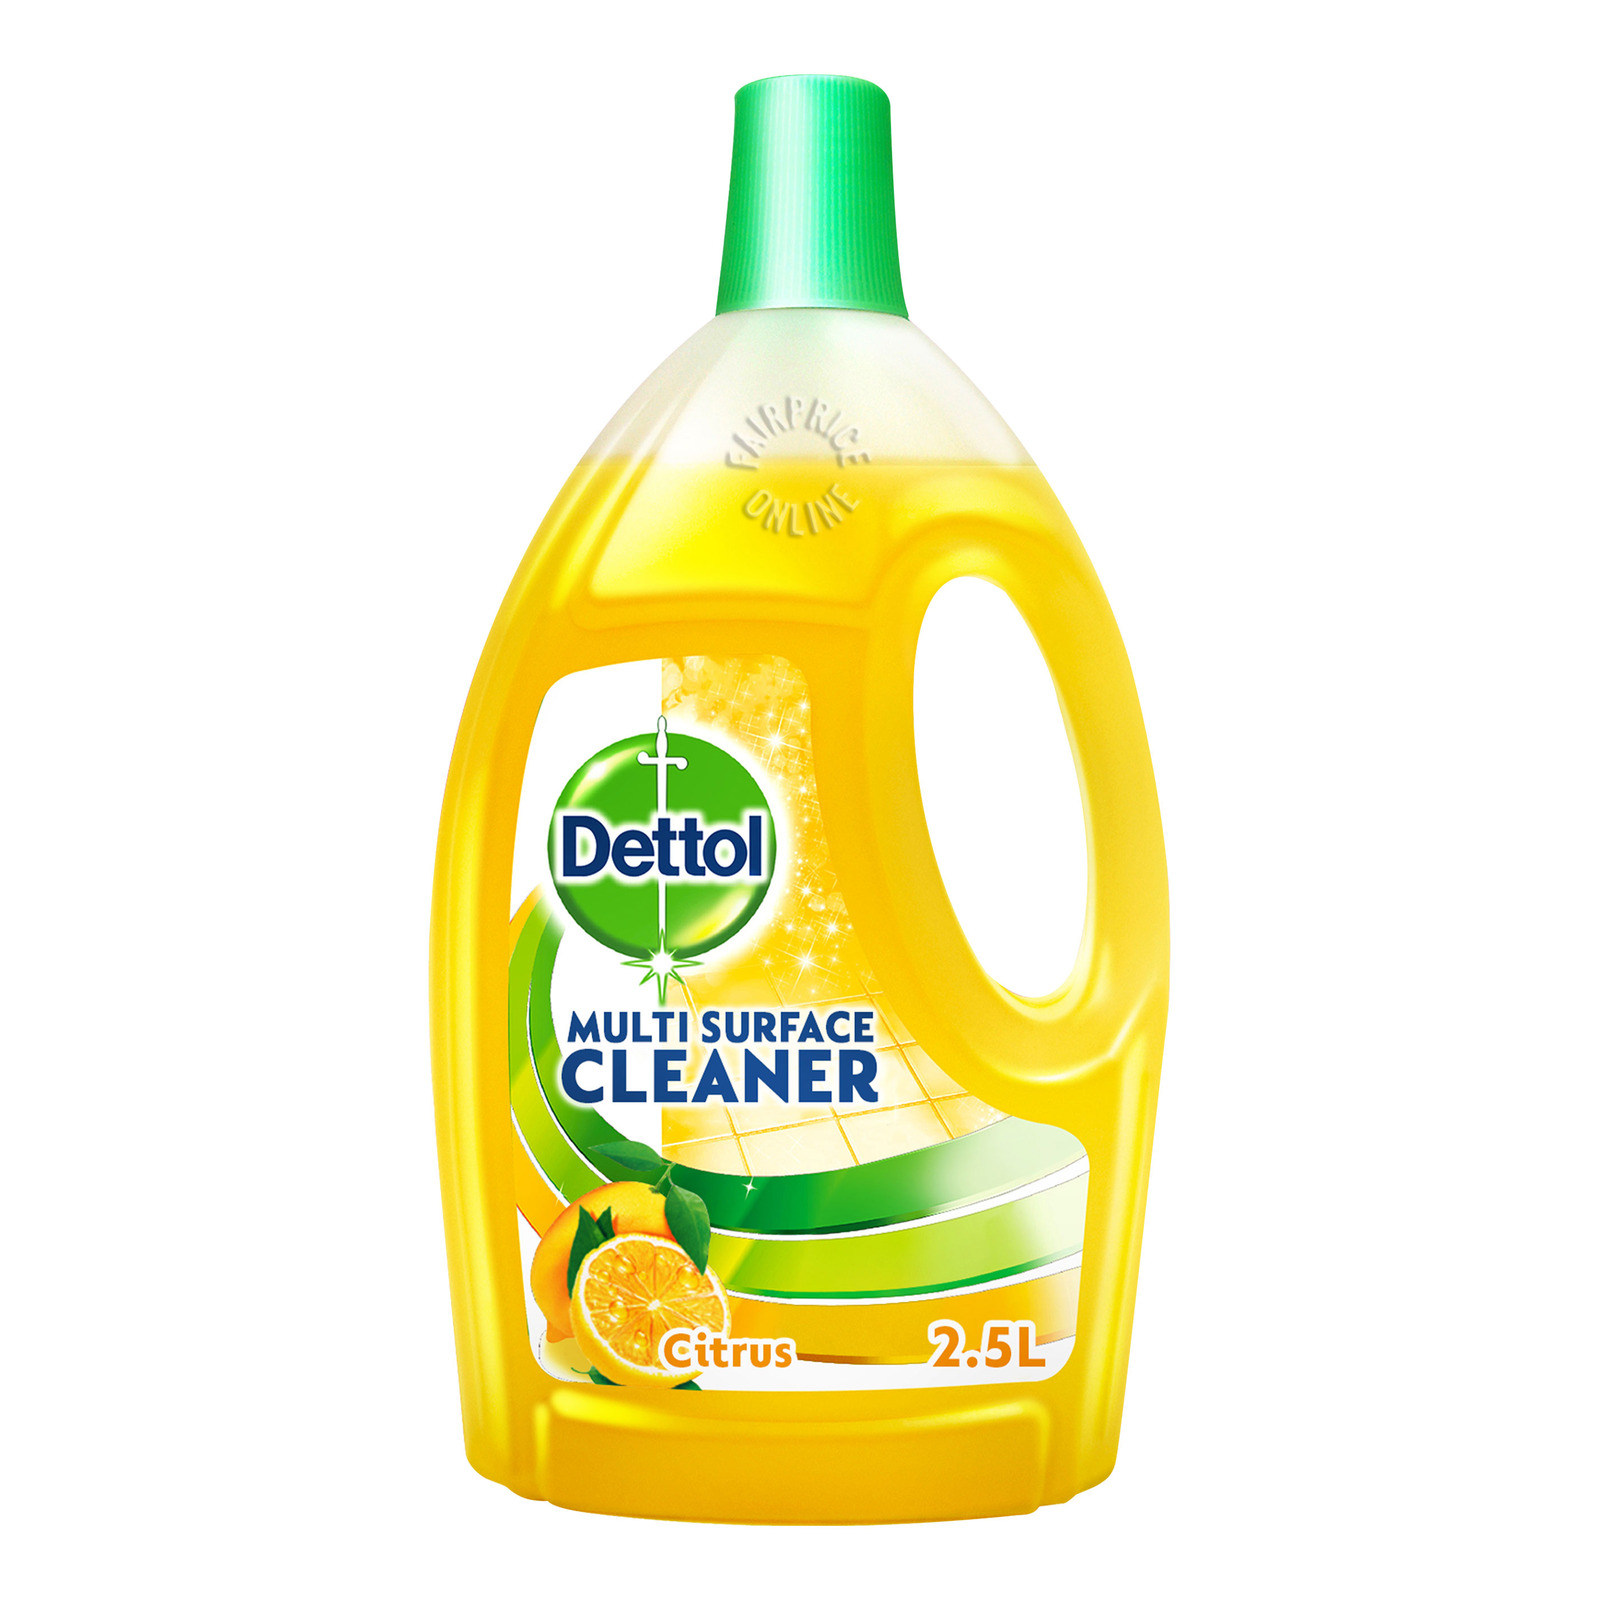 Dettol 4 in 1 Multi Surface Cleaner - Citrus